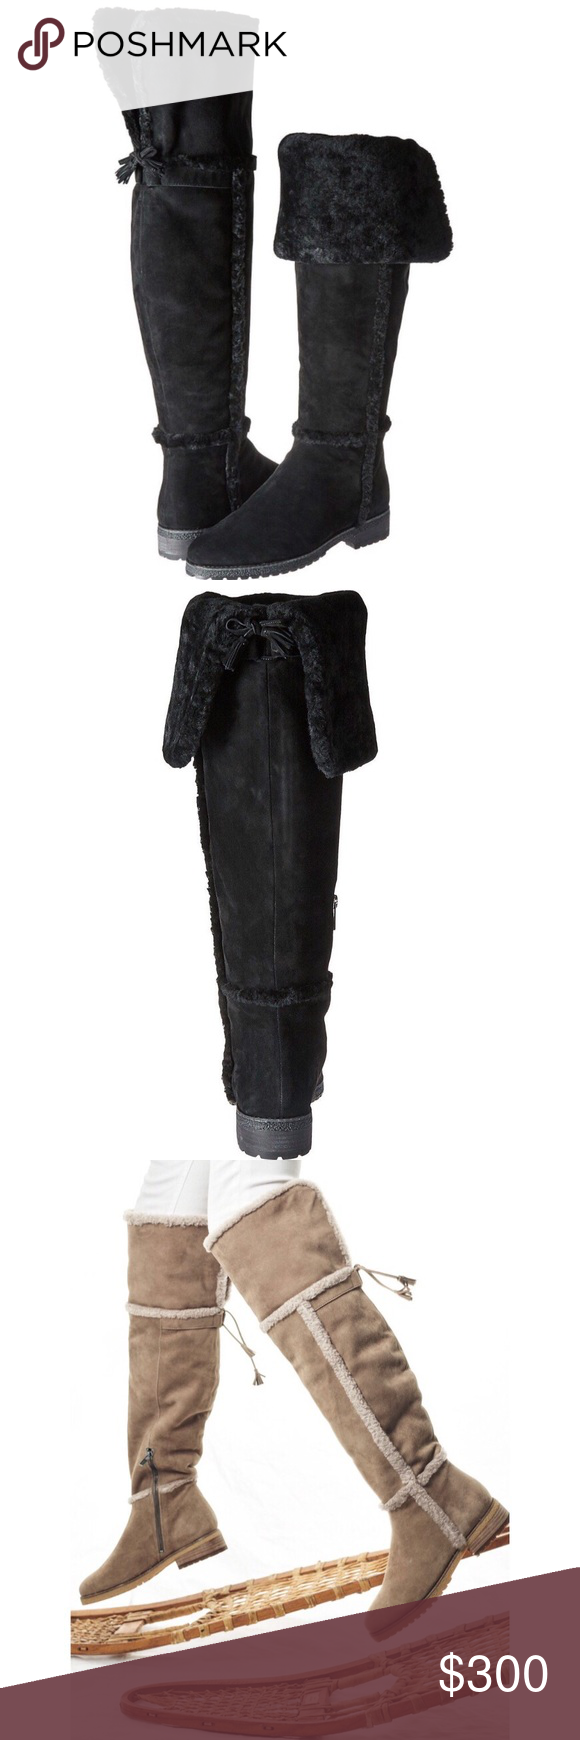 78e55df93c3 FRYE  Tamara  Shearling Over the Knee Boots Designed with function and  fashion in mind